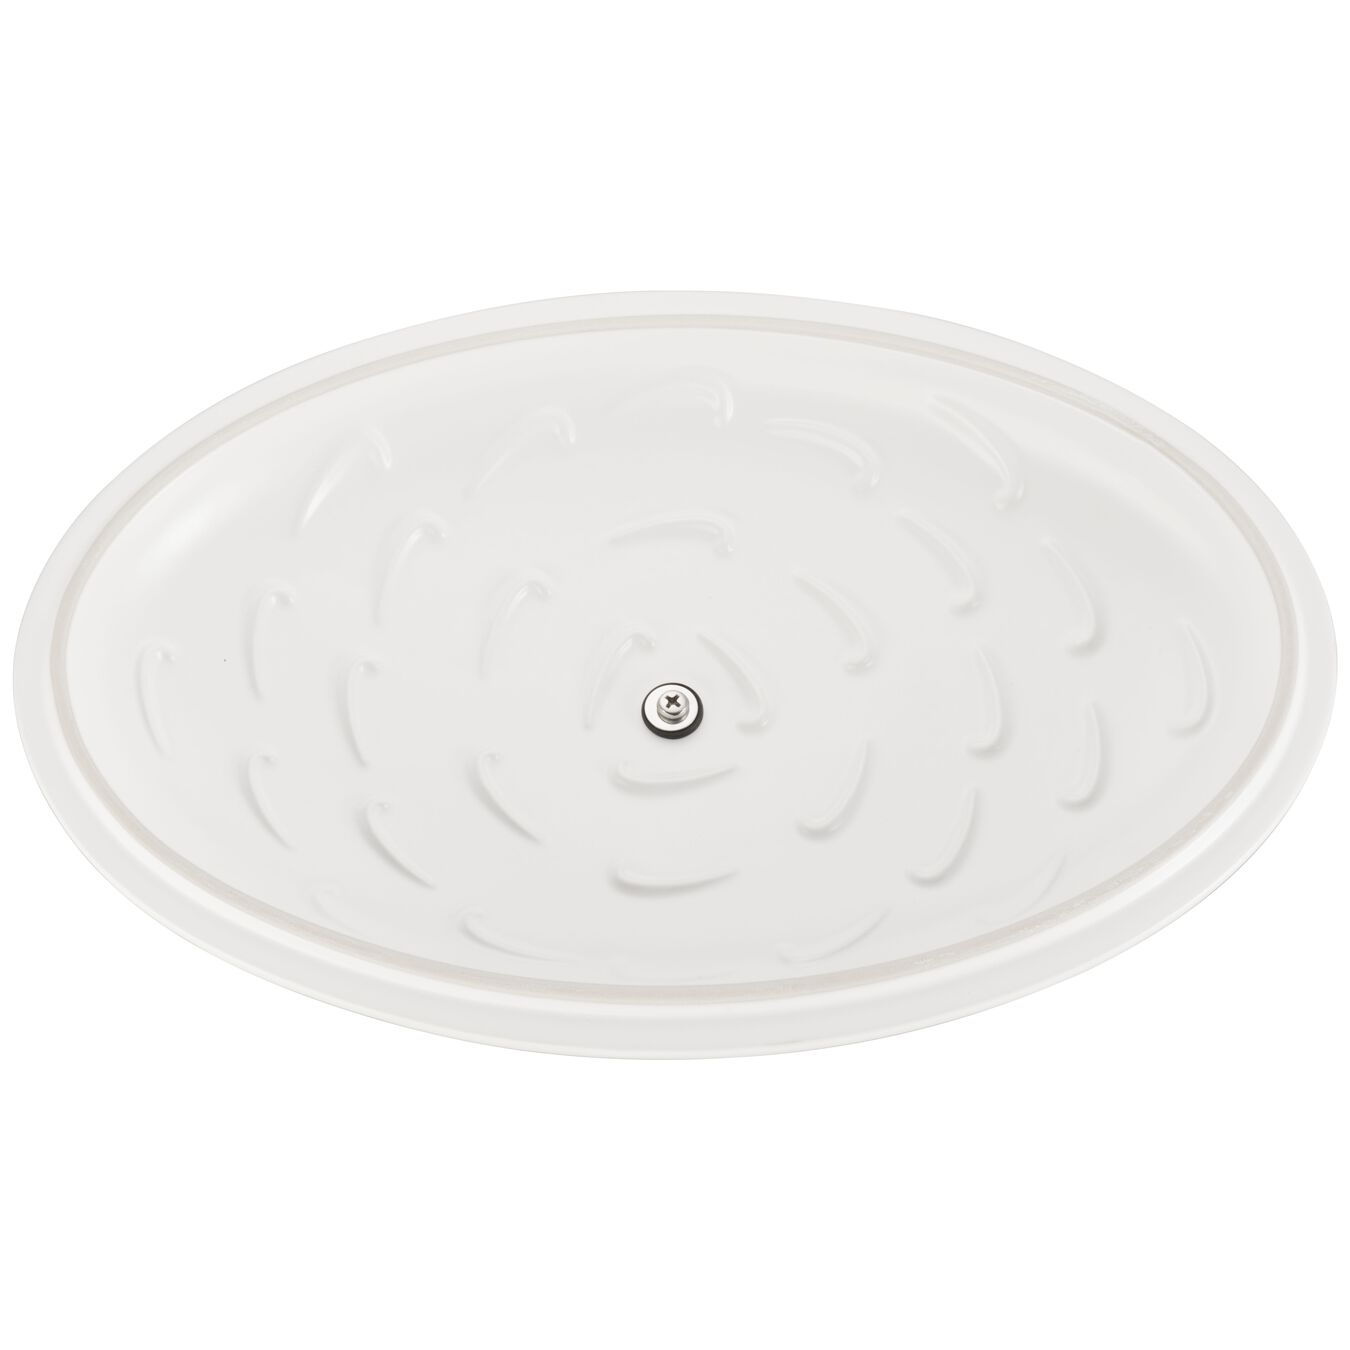 14-inch Oval Covered Baking Dish - Matte White,,large 4